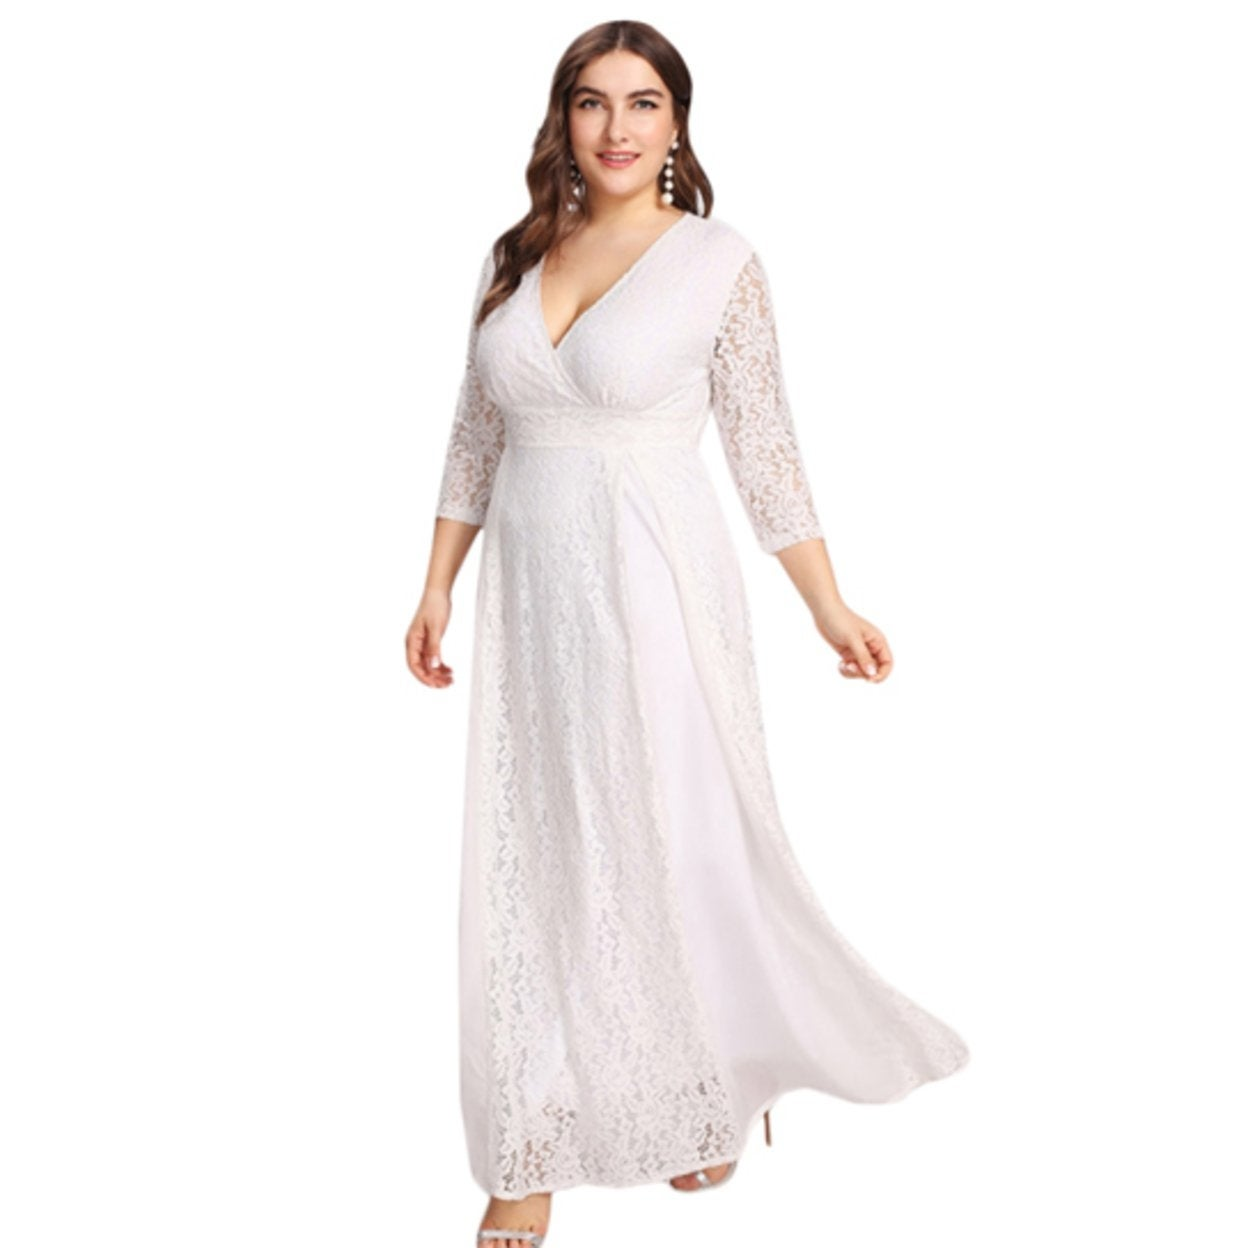 ddab95c40c99a Shop Women's Plus Size High Waist Lace Overlay Evening Maxi Dress - On Sale  - Free Shipping Today - Overstock - 27114107